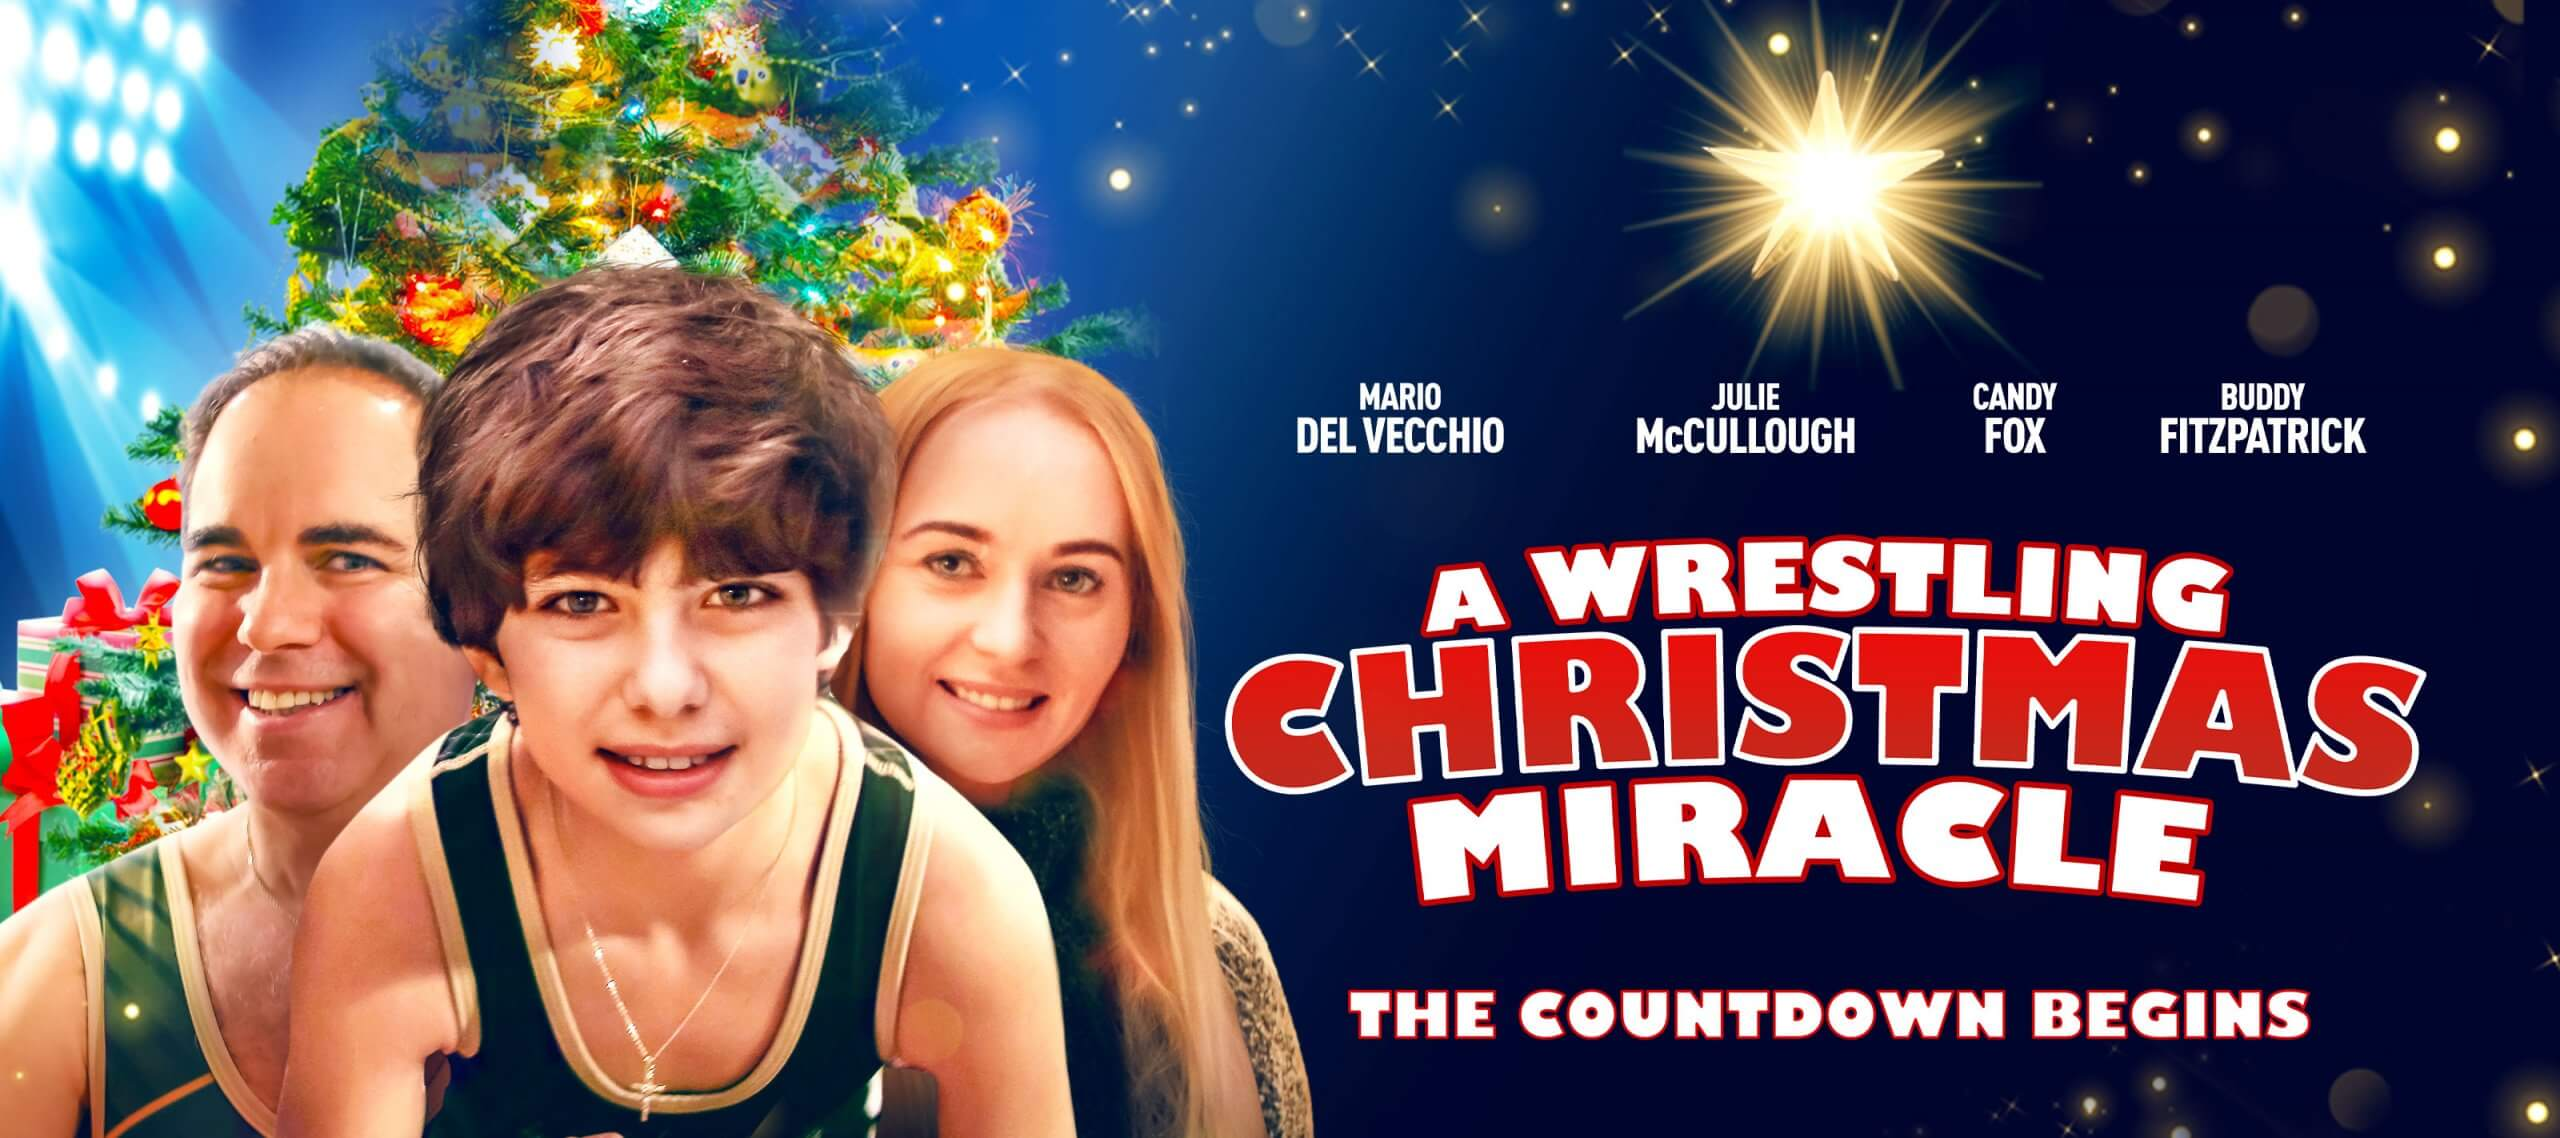 A Wrestling Christmas Miracle 3200x1422 1 scaled A WRESTLING CHRISTMAS MIRACLE